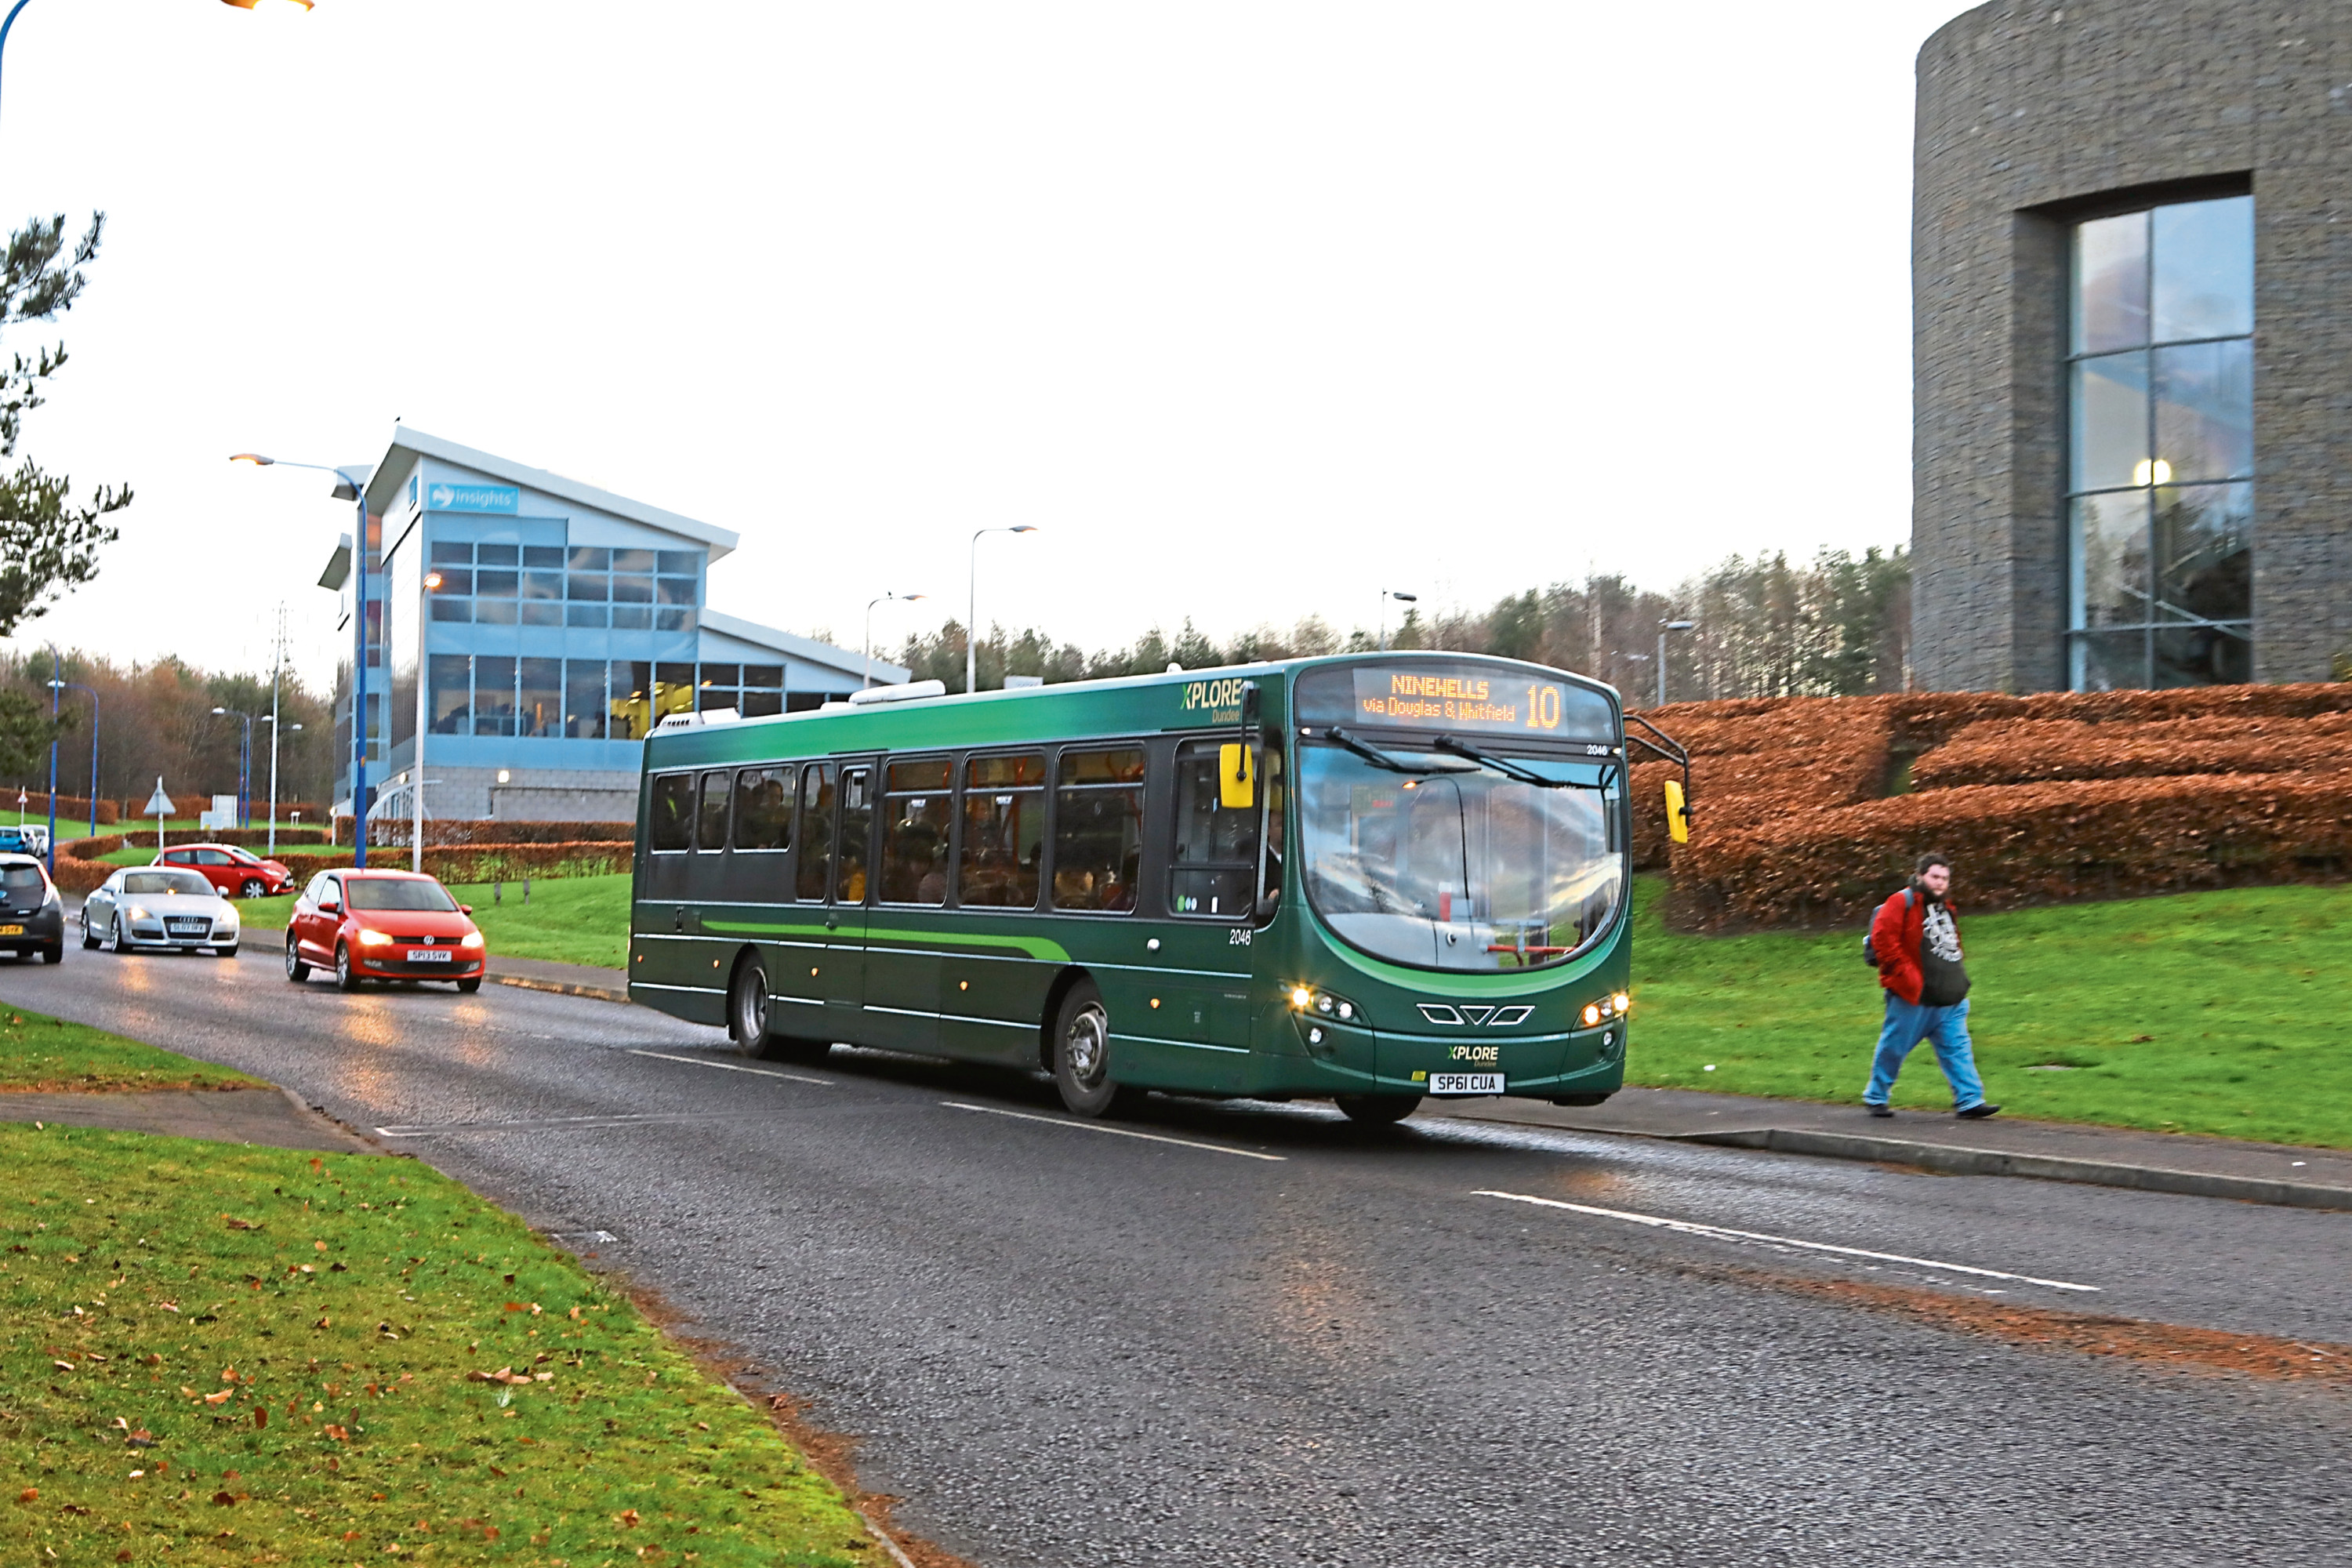 The bus at Dundee Technology Park